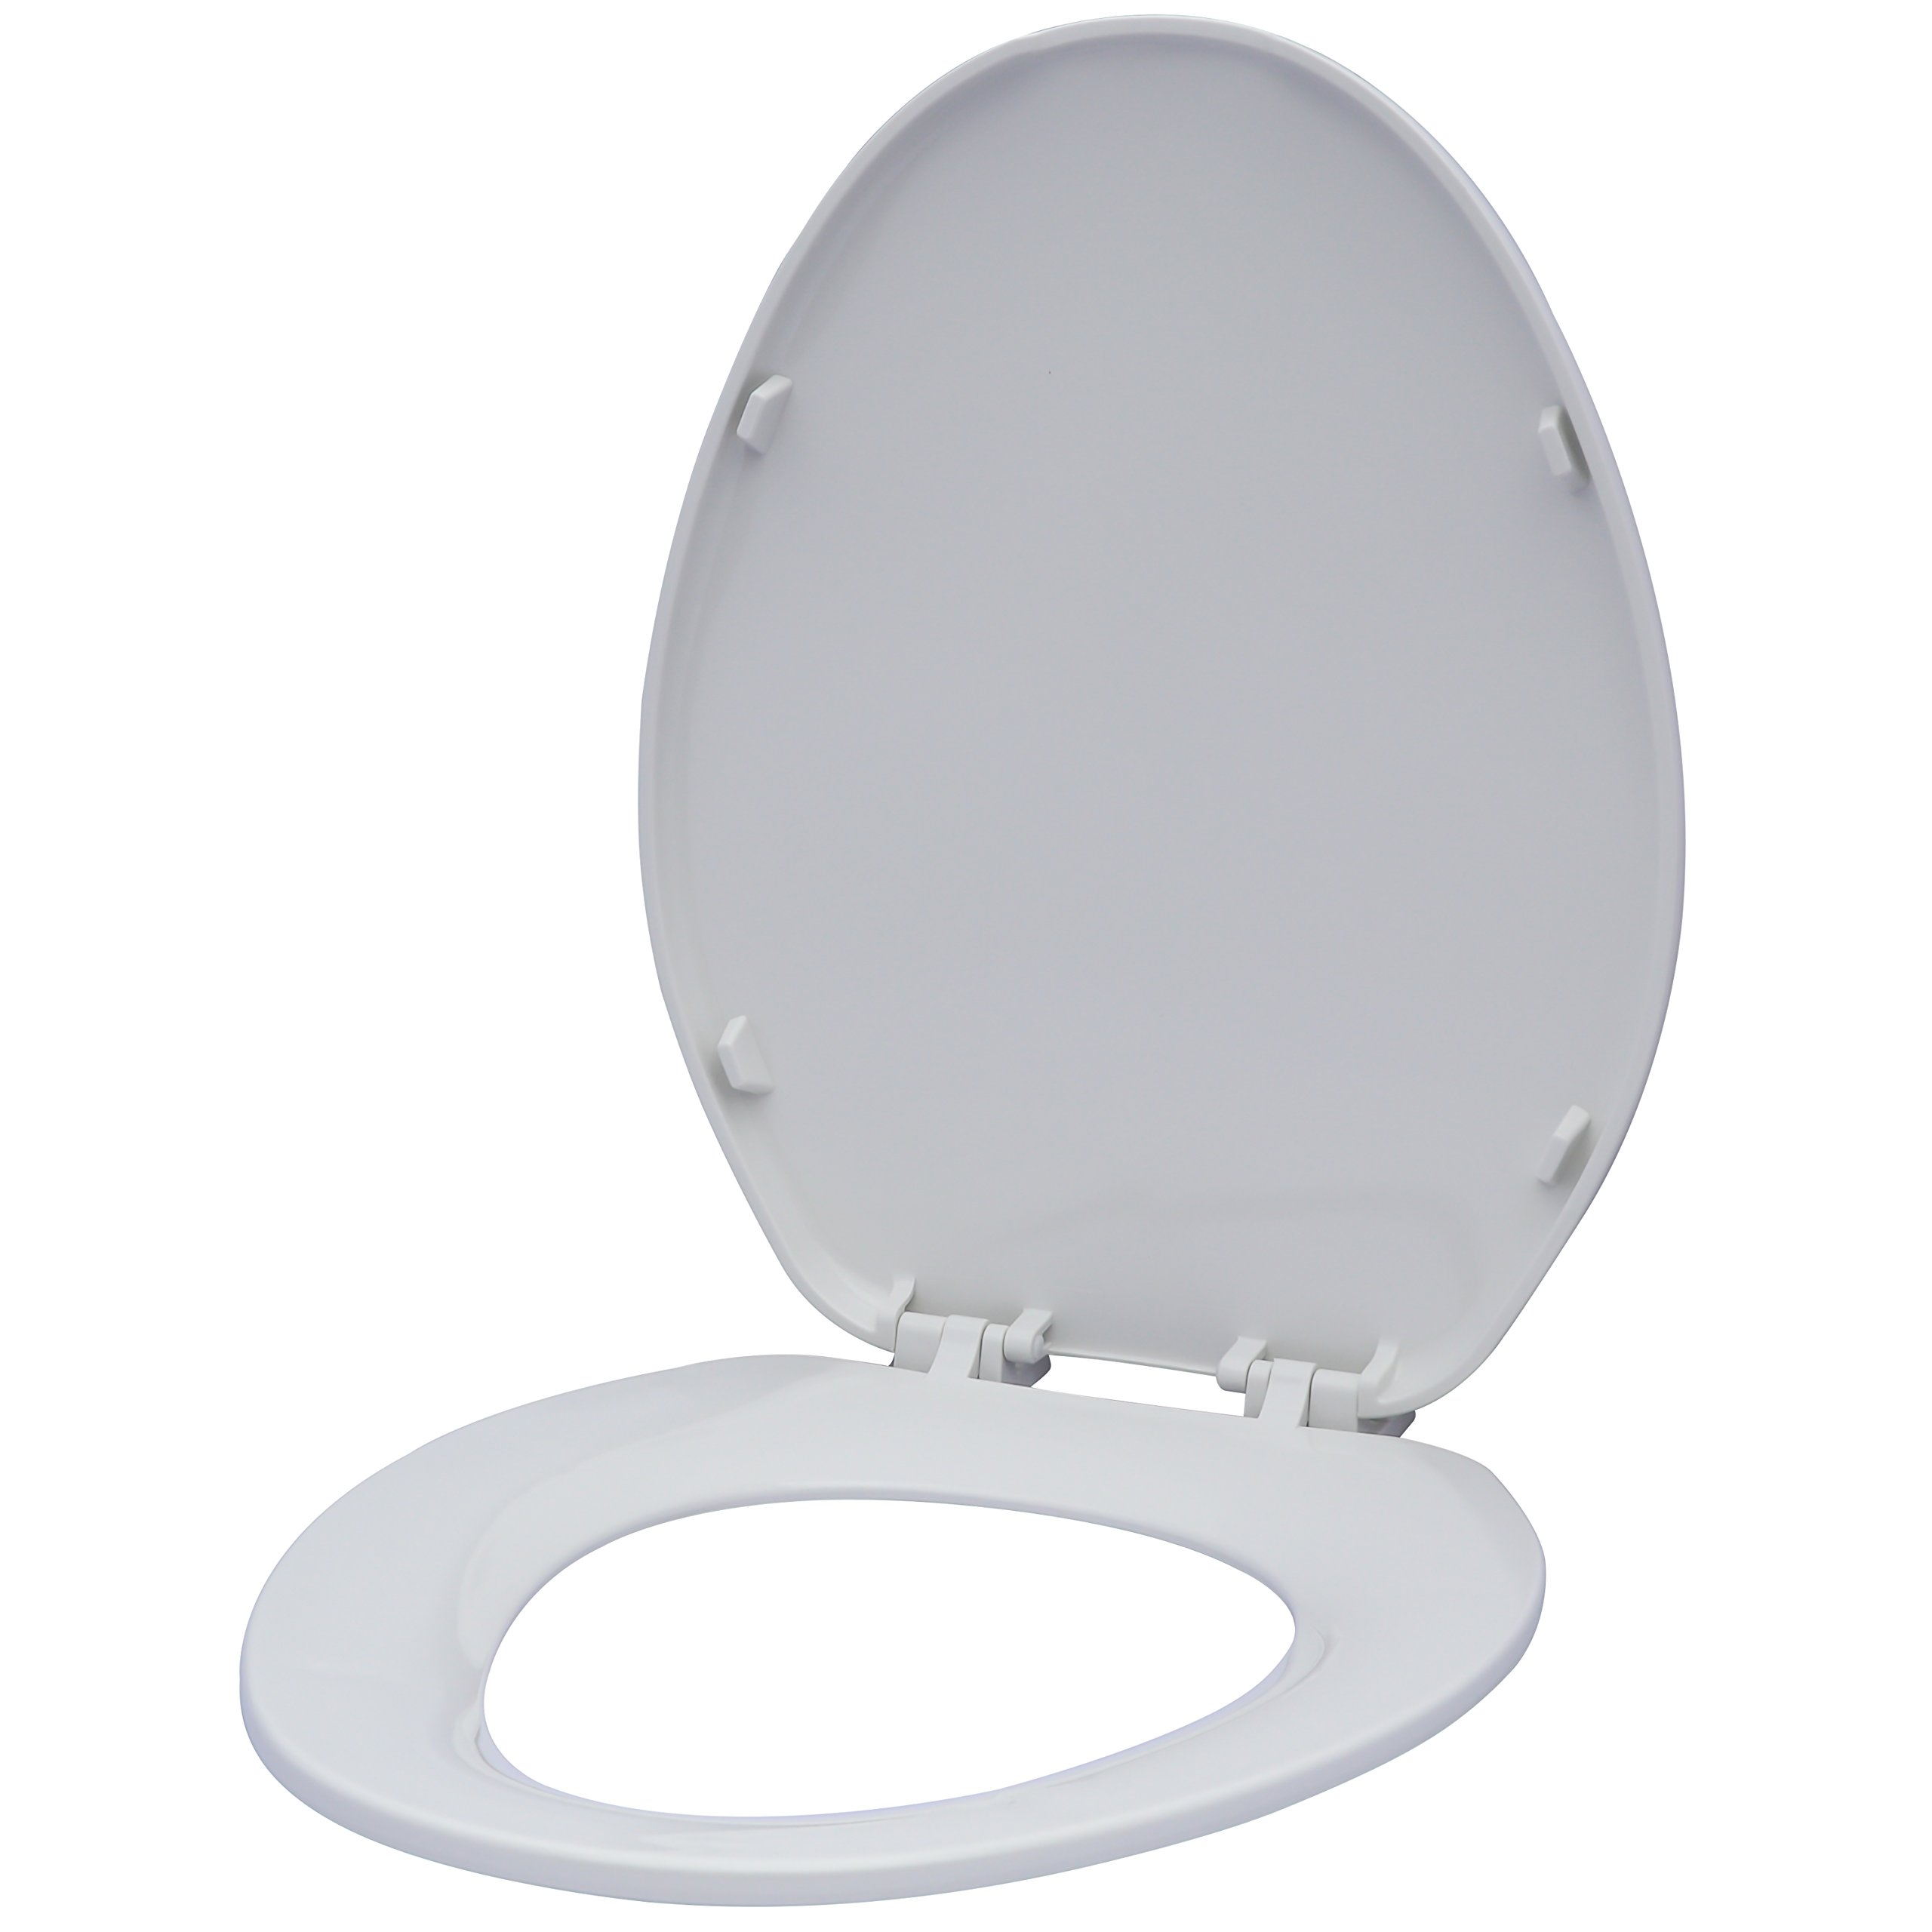 Karlson KS1241-1901-WH Builder Grade Plastic Elongated Toilet Seat White